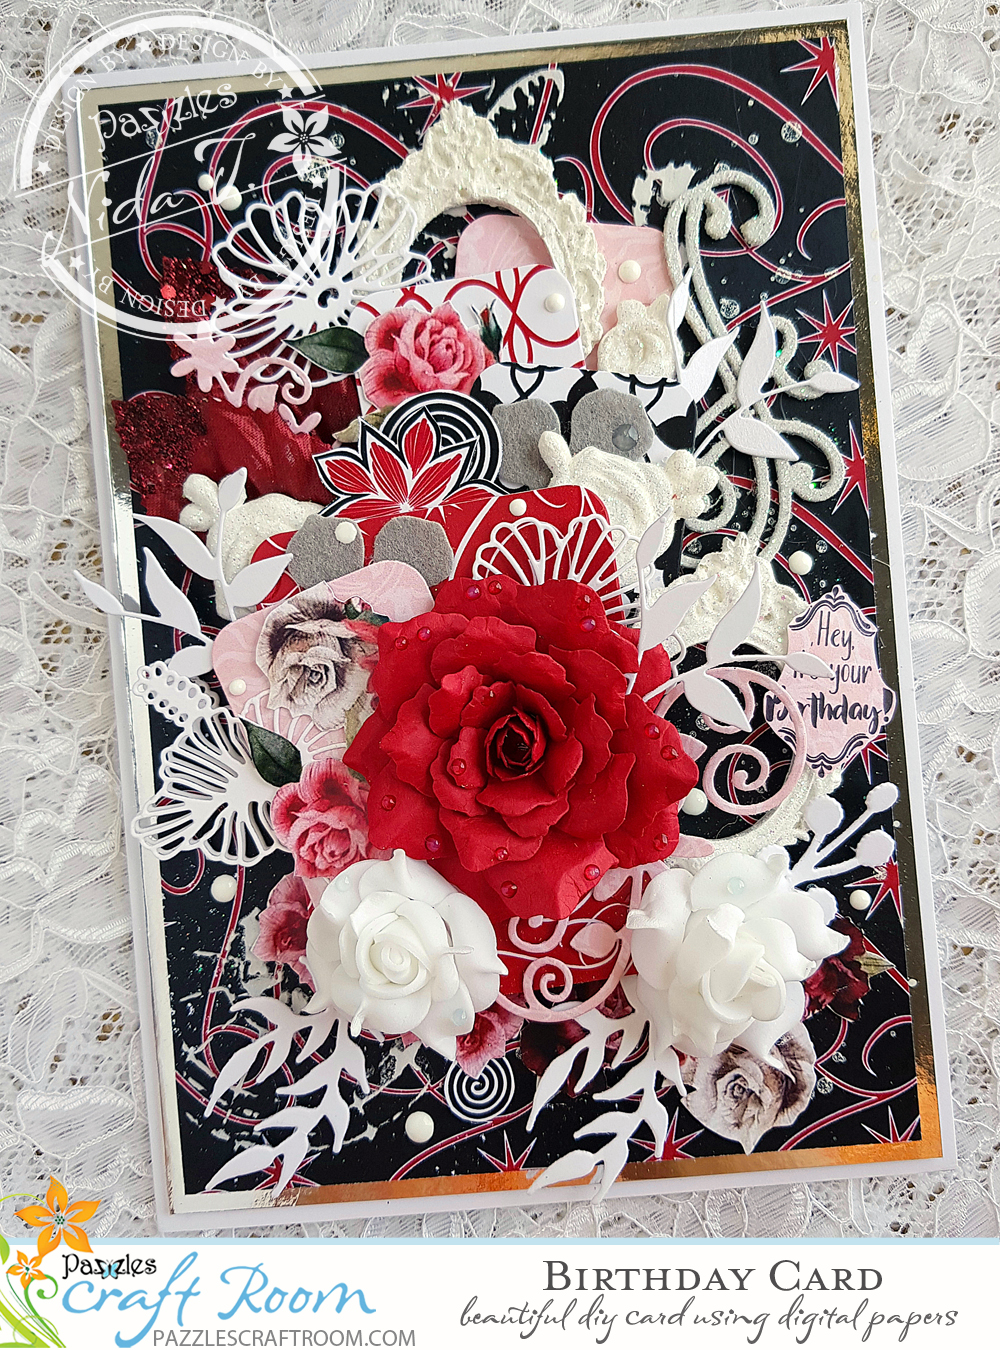 Pazzles DIY Birthday Card with Paper Rose by Nida Tanweer with Paper Flower Tutorial